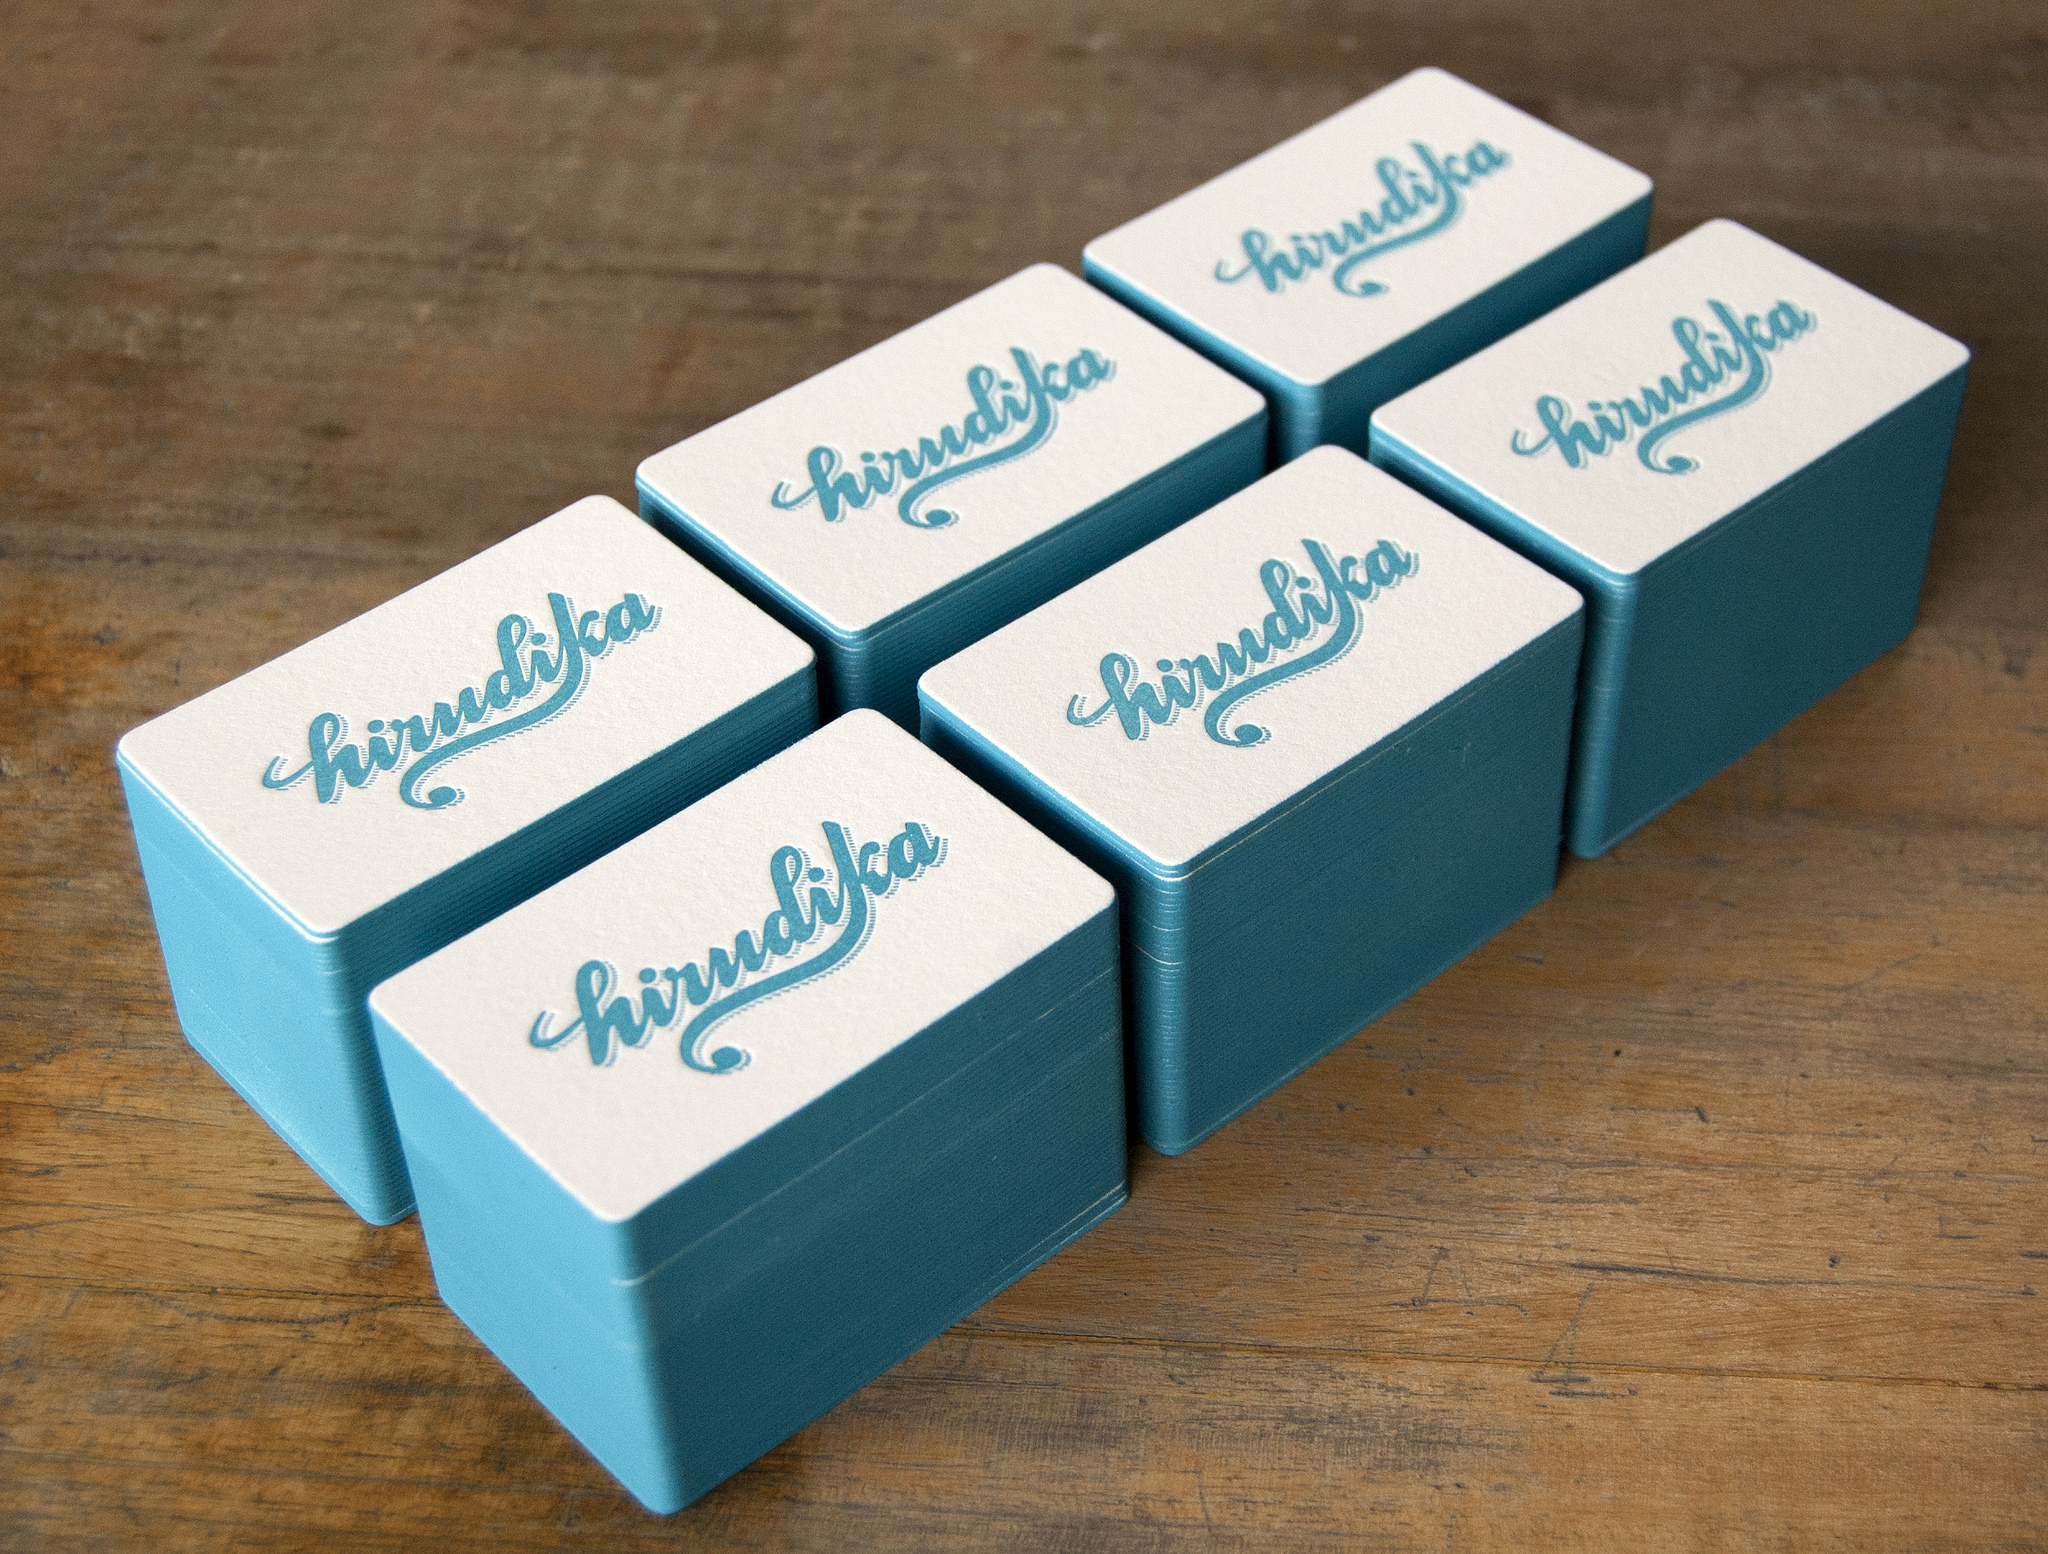 creative letterpress business cards – ananas